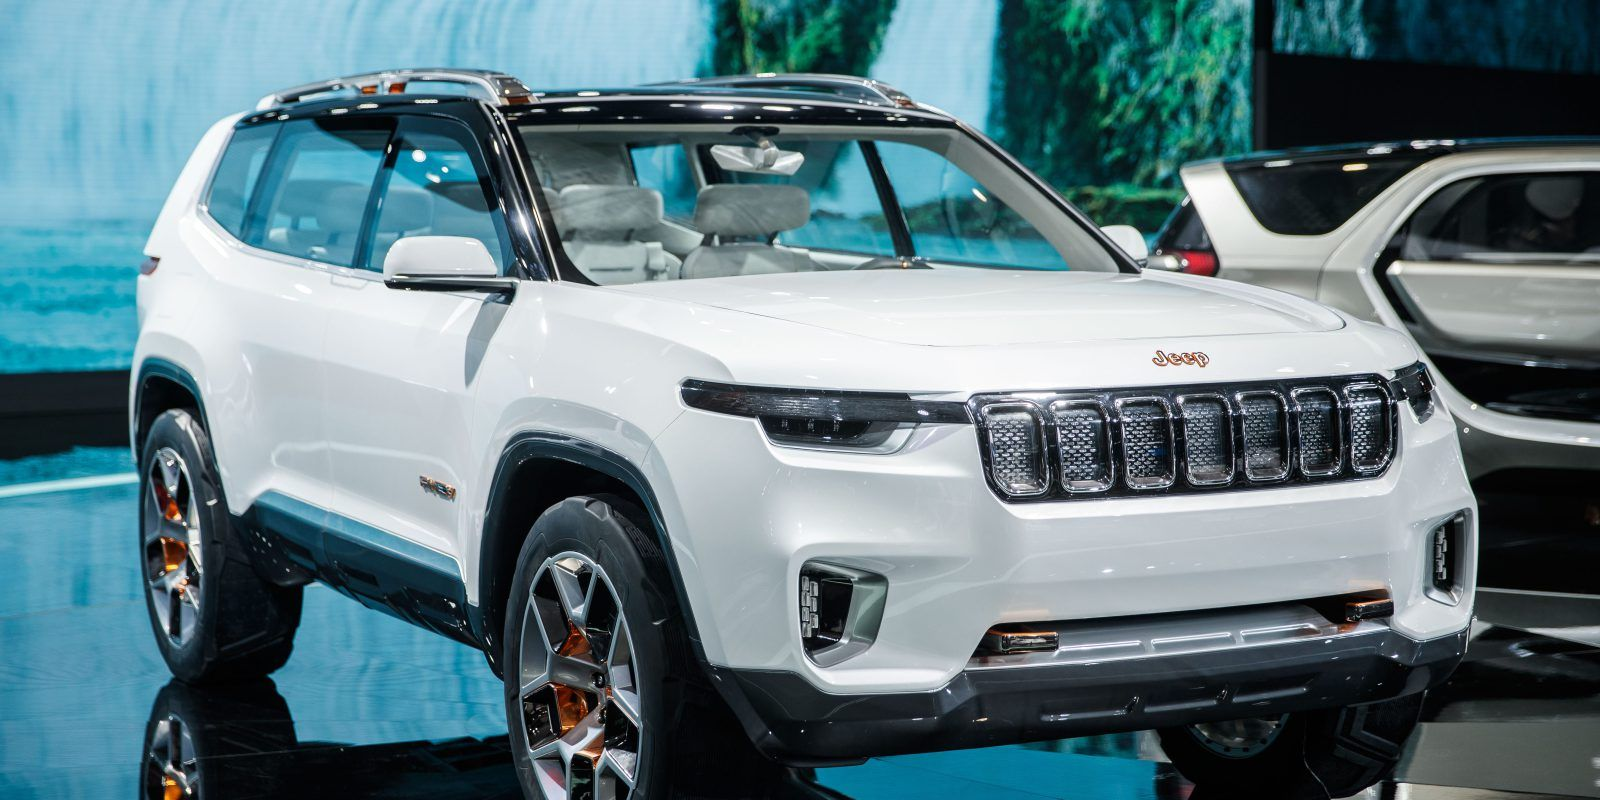 Jeep S Plug In Hybrid Suv Concept Debuts With A 40 Miles All